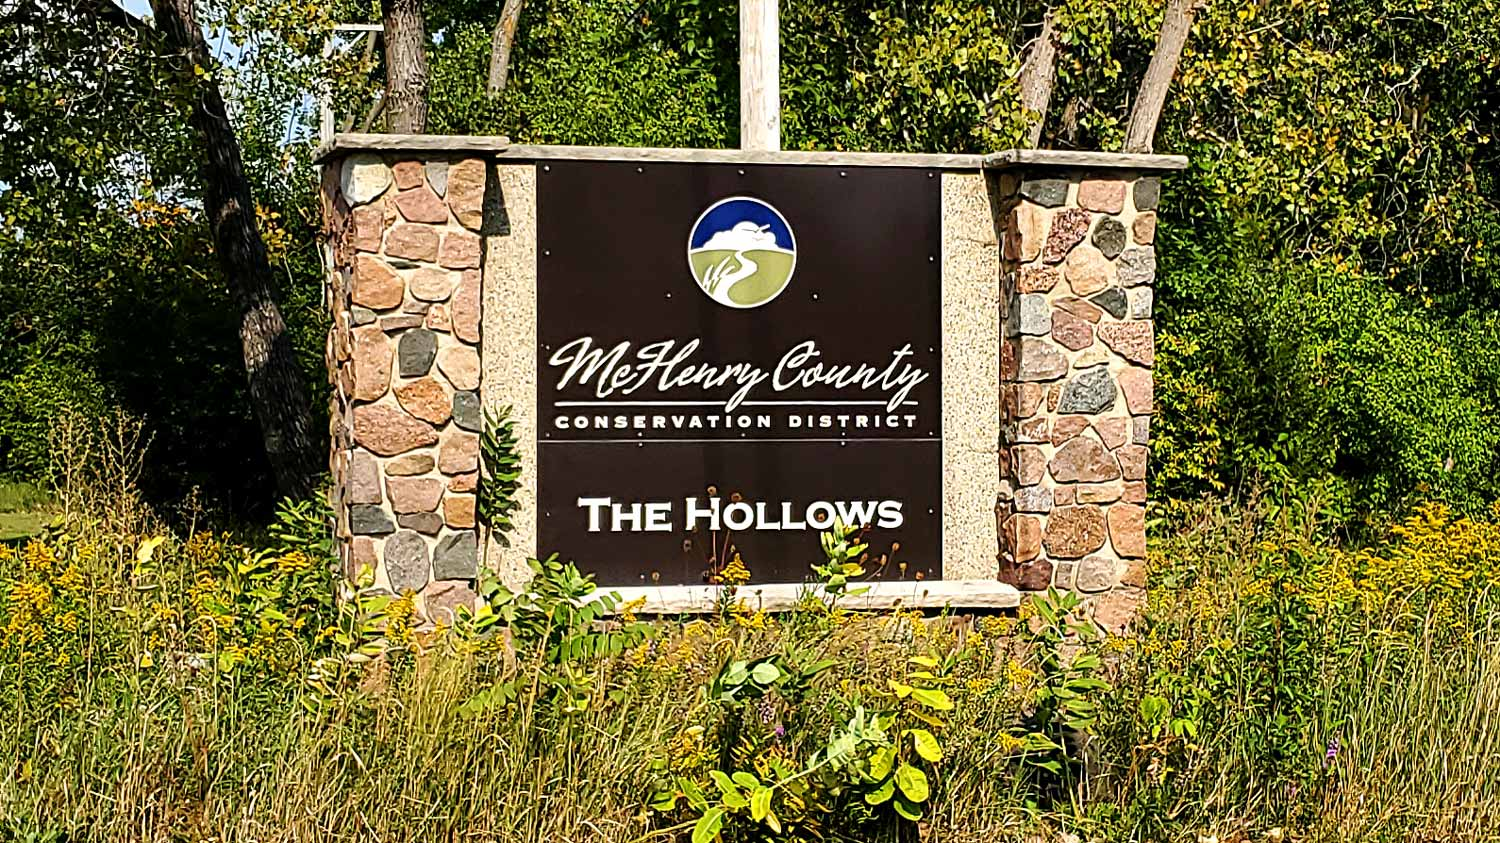 McHenry County Conservation District entrance sign for The Hollows.